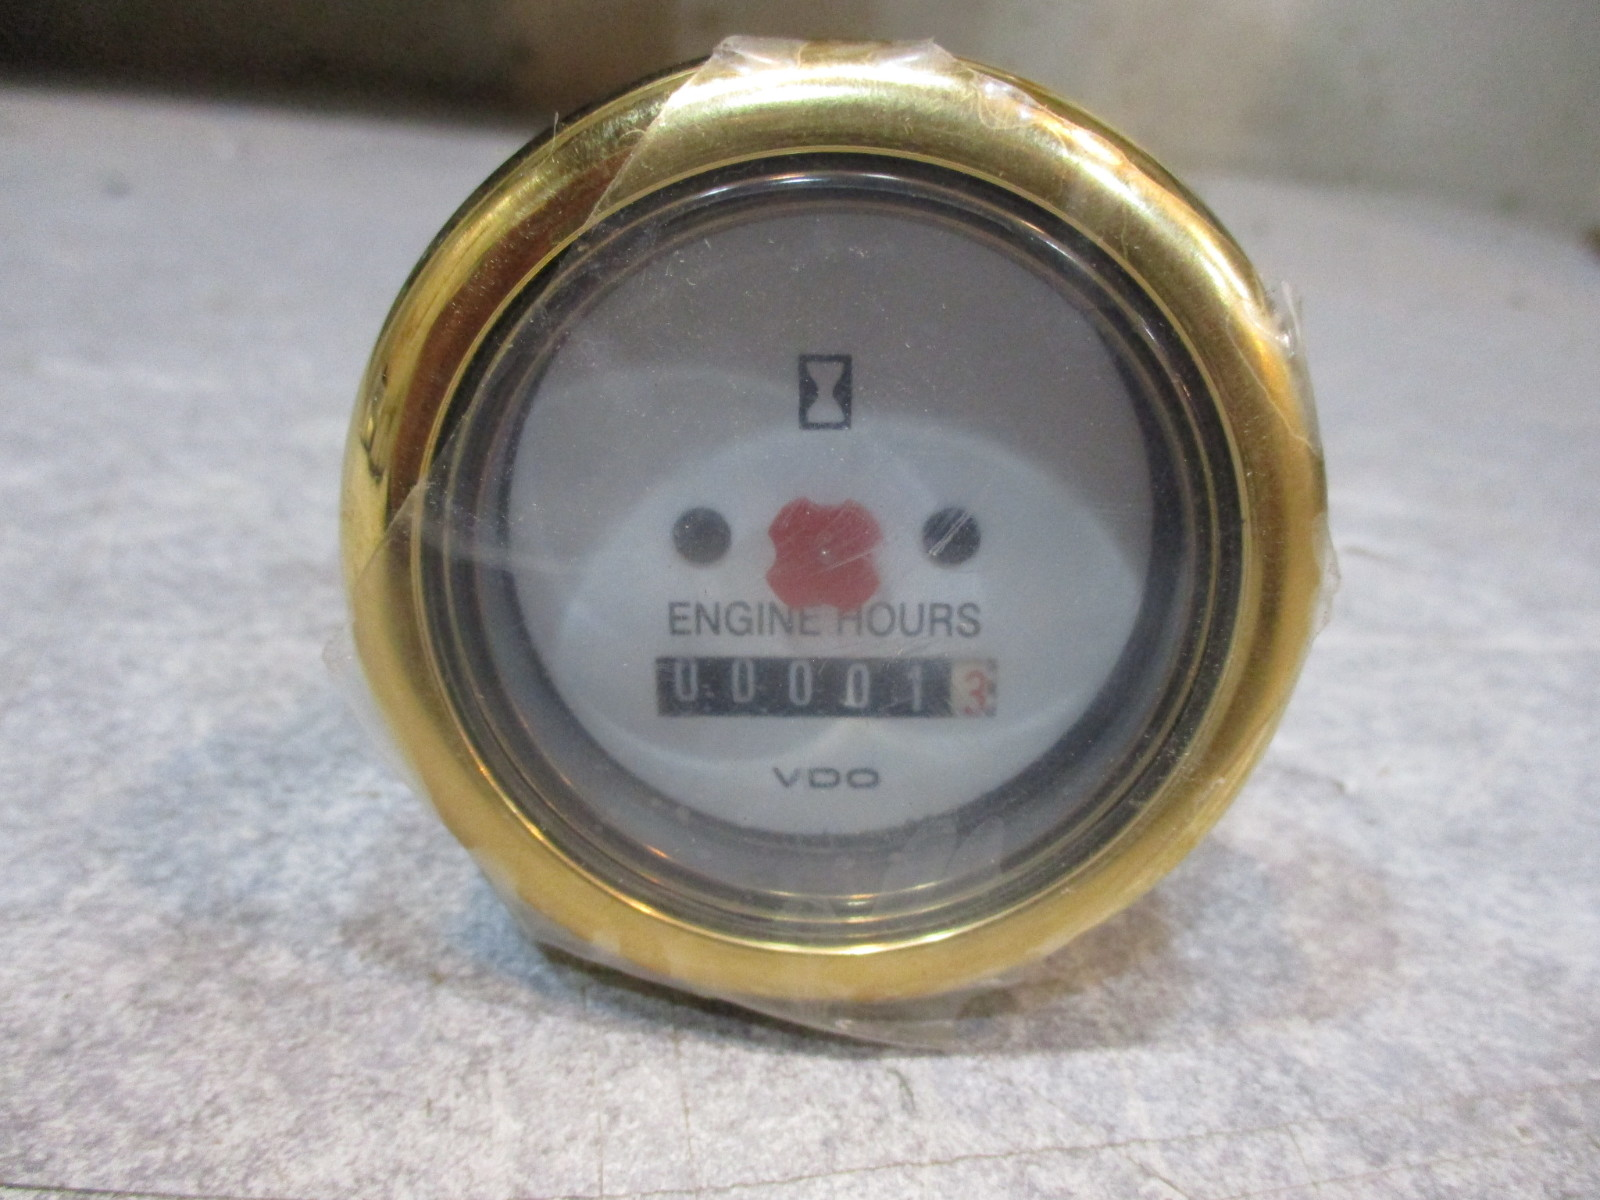 White Hour Meter : Marine boat vdo engine hour meter gauge quot white face gold